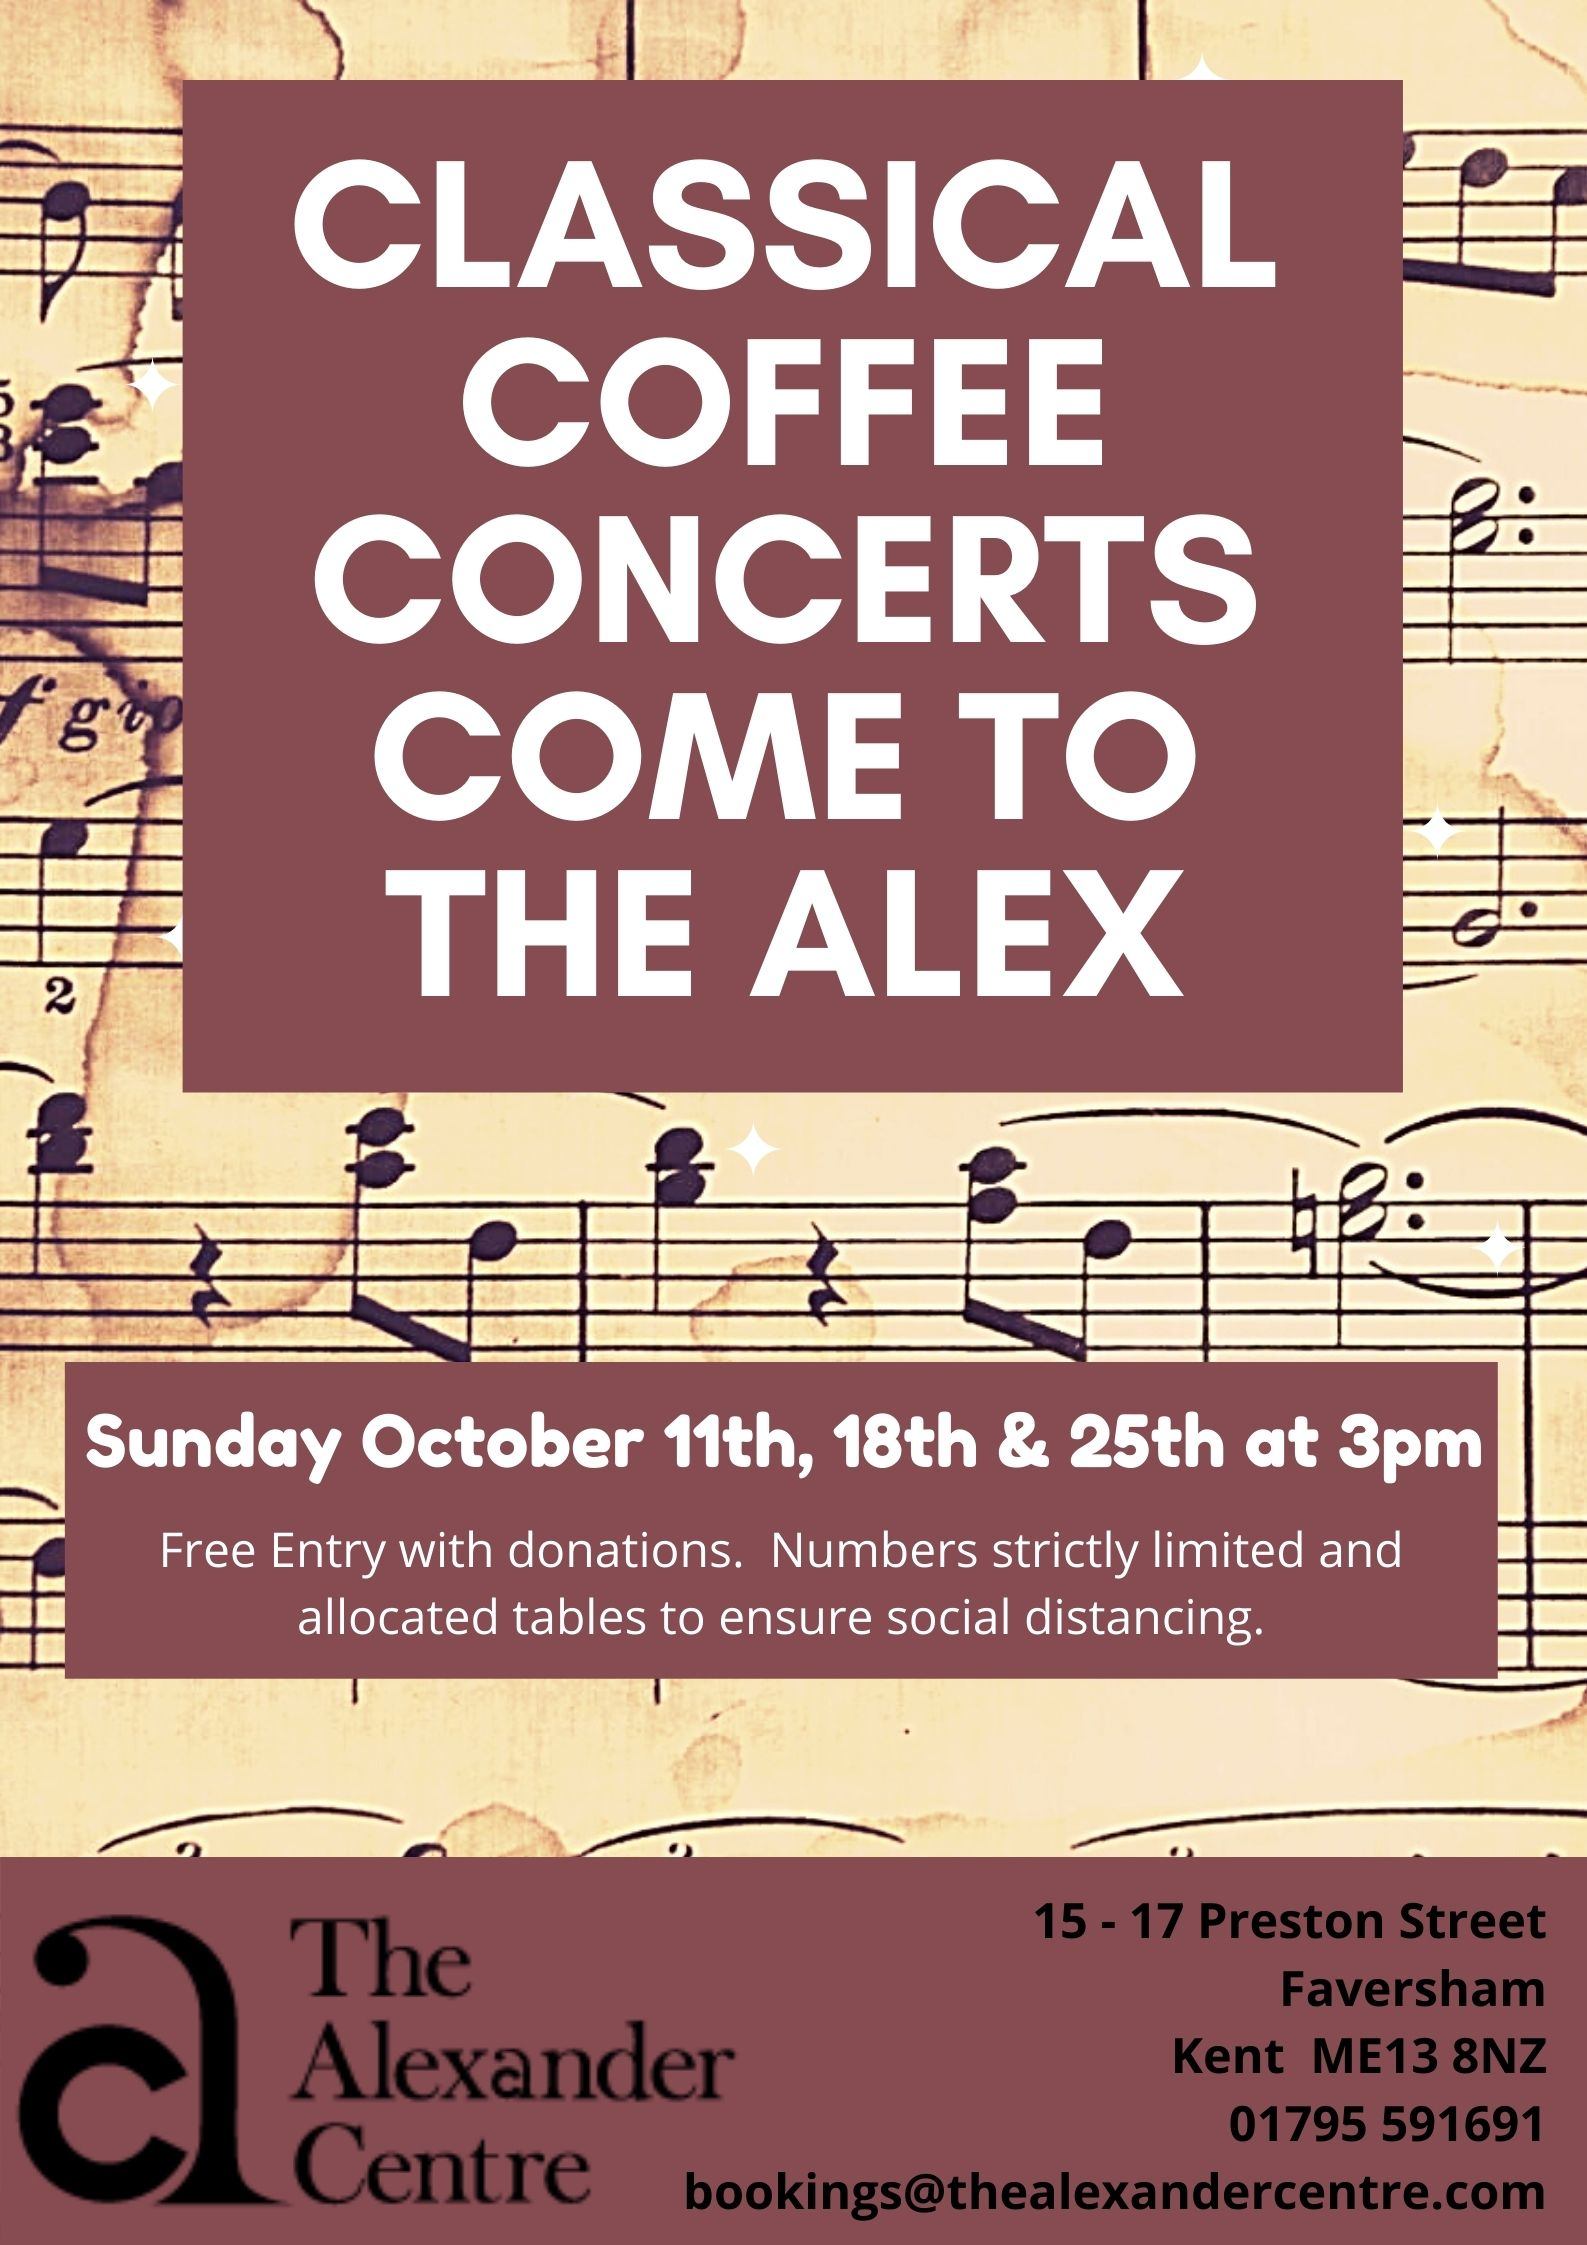 Classical Coffee Concerts